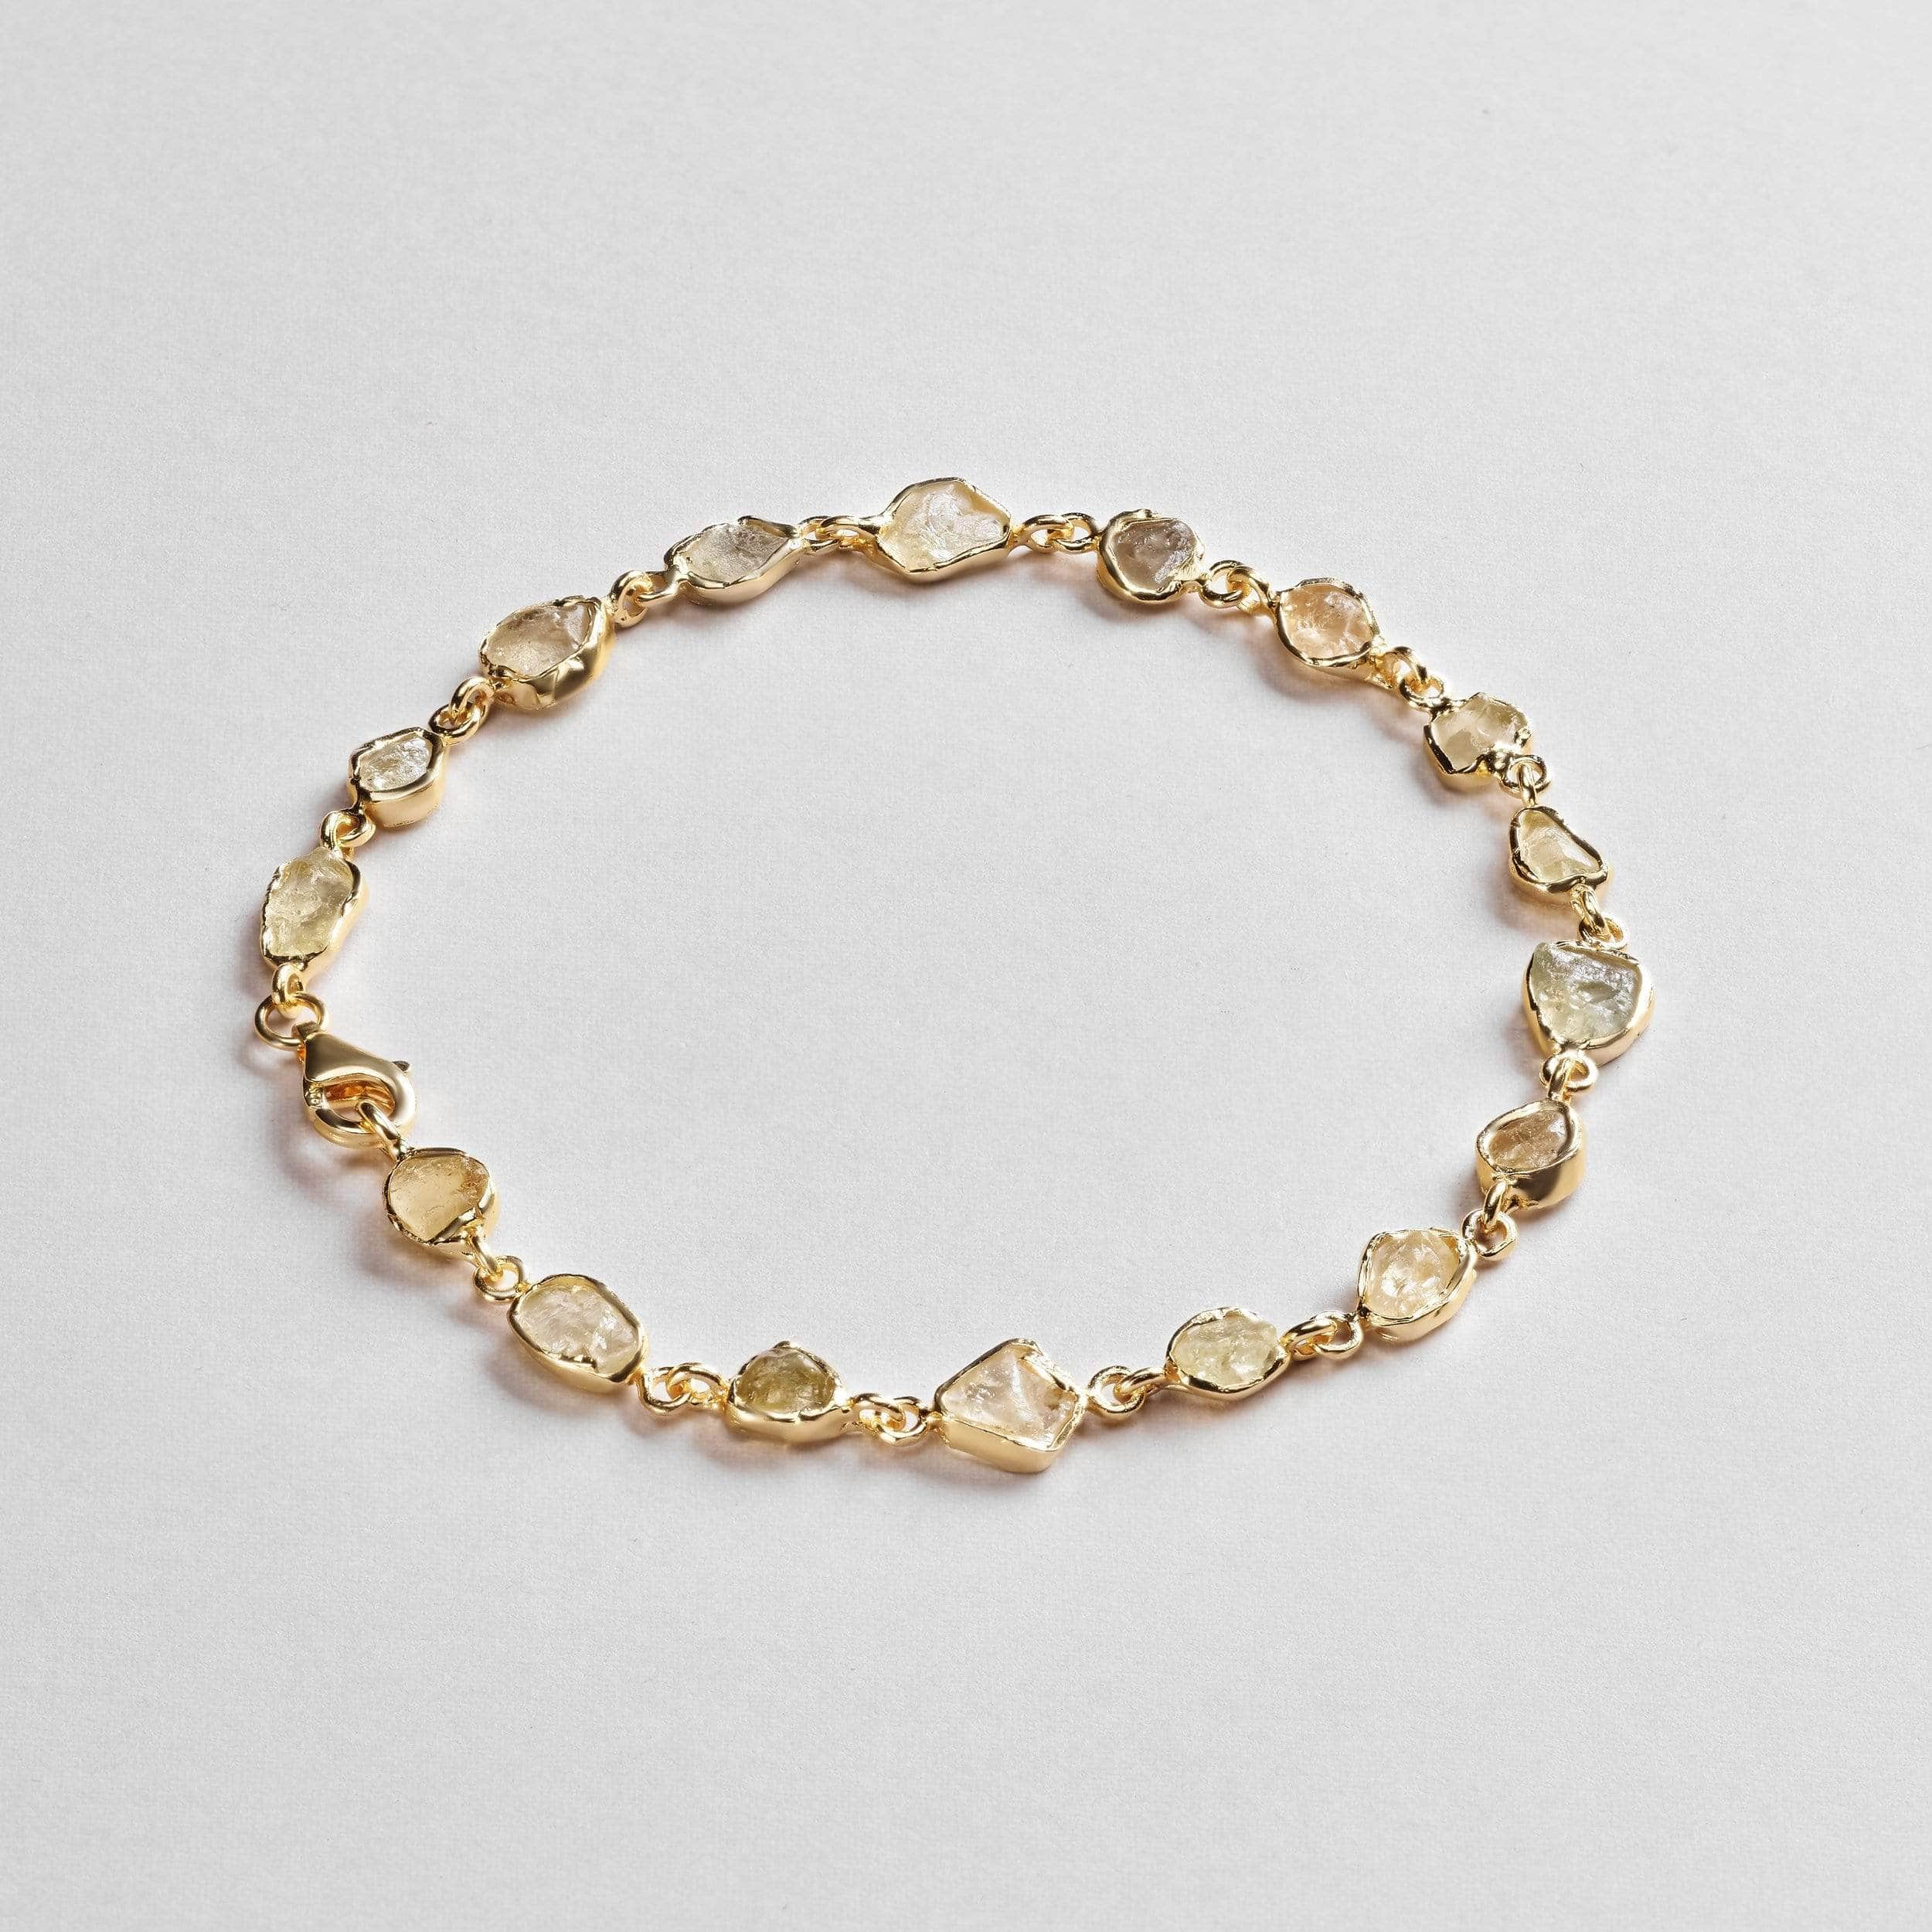 Sirenza Chrysoberyl Bangle